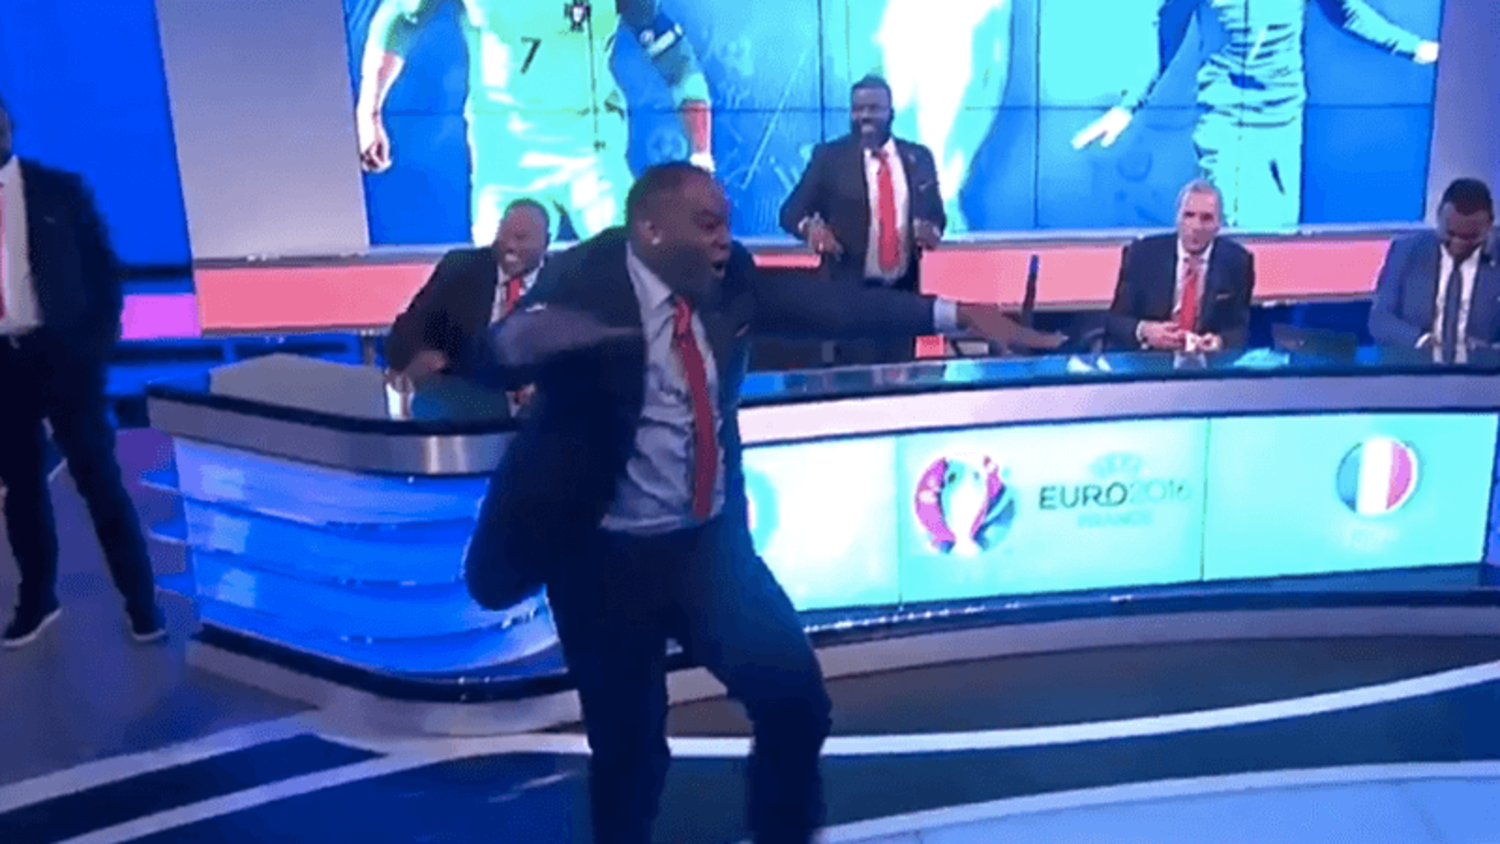 Benni McCarthy loses it as Eder scores Euro 2016 winner for Portugal